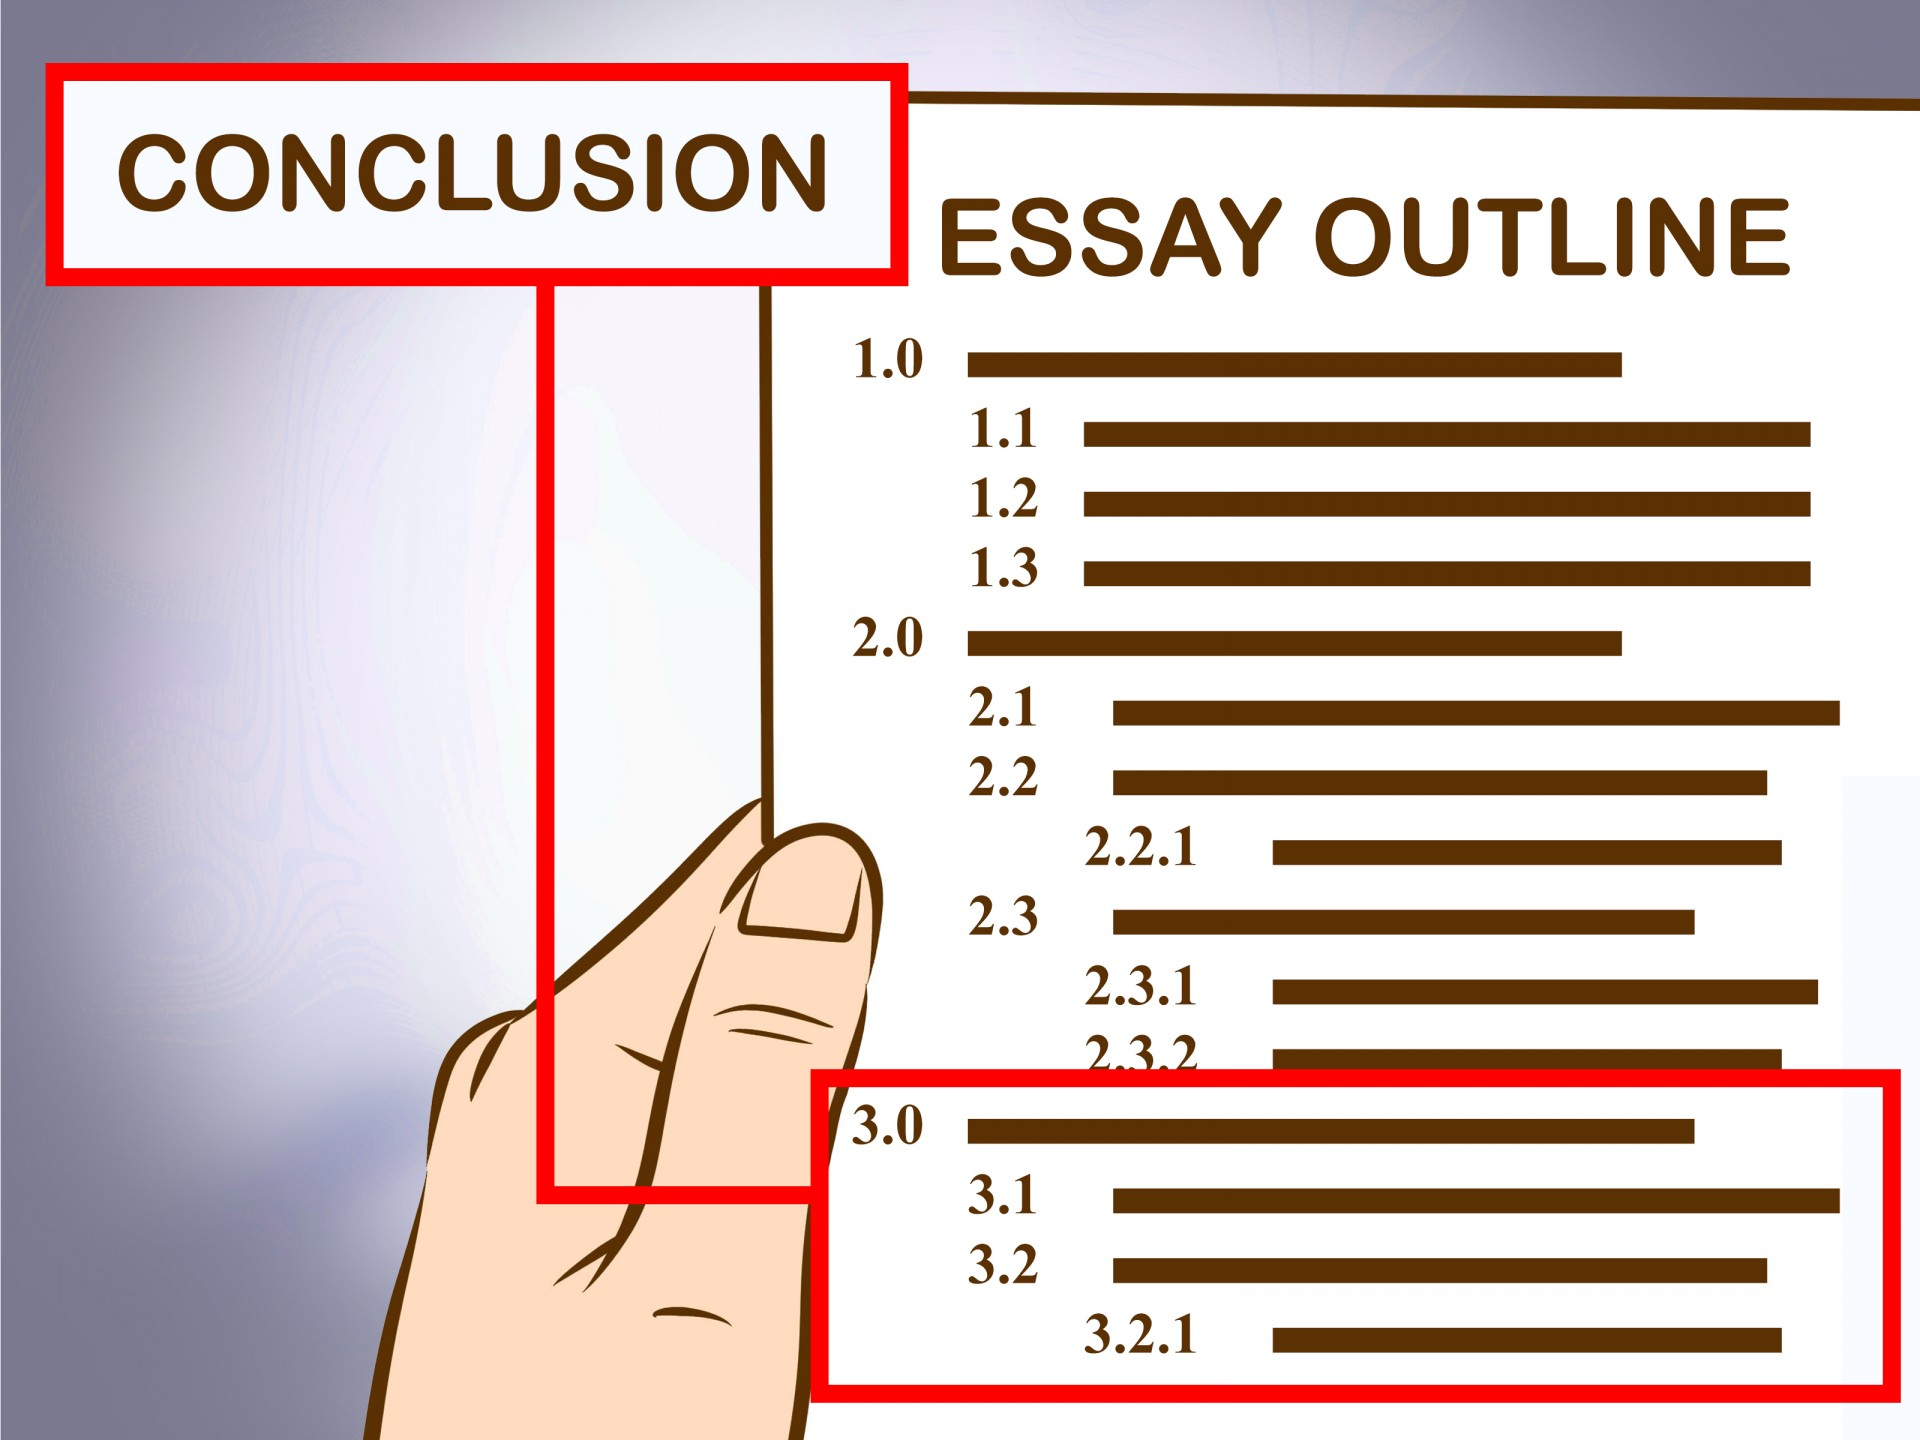 003 How To Make An Essay Example Write Outline Step Version Unusual Self Introduction The Best In Longer With Periods 1920